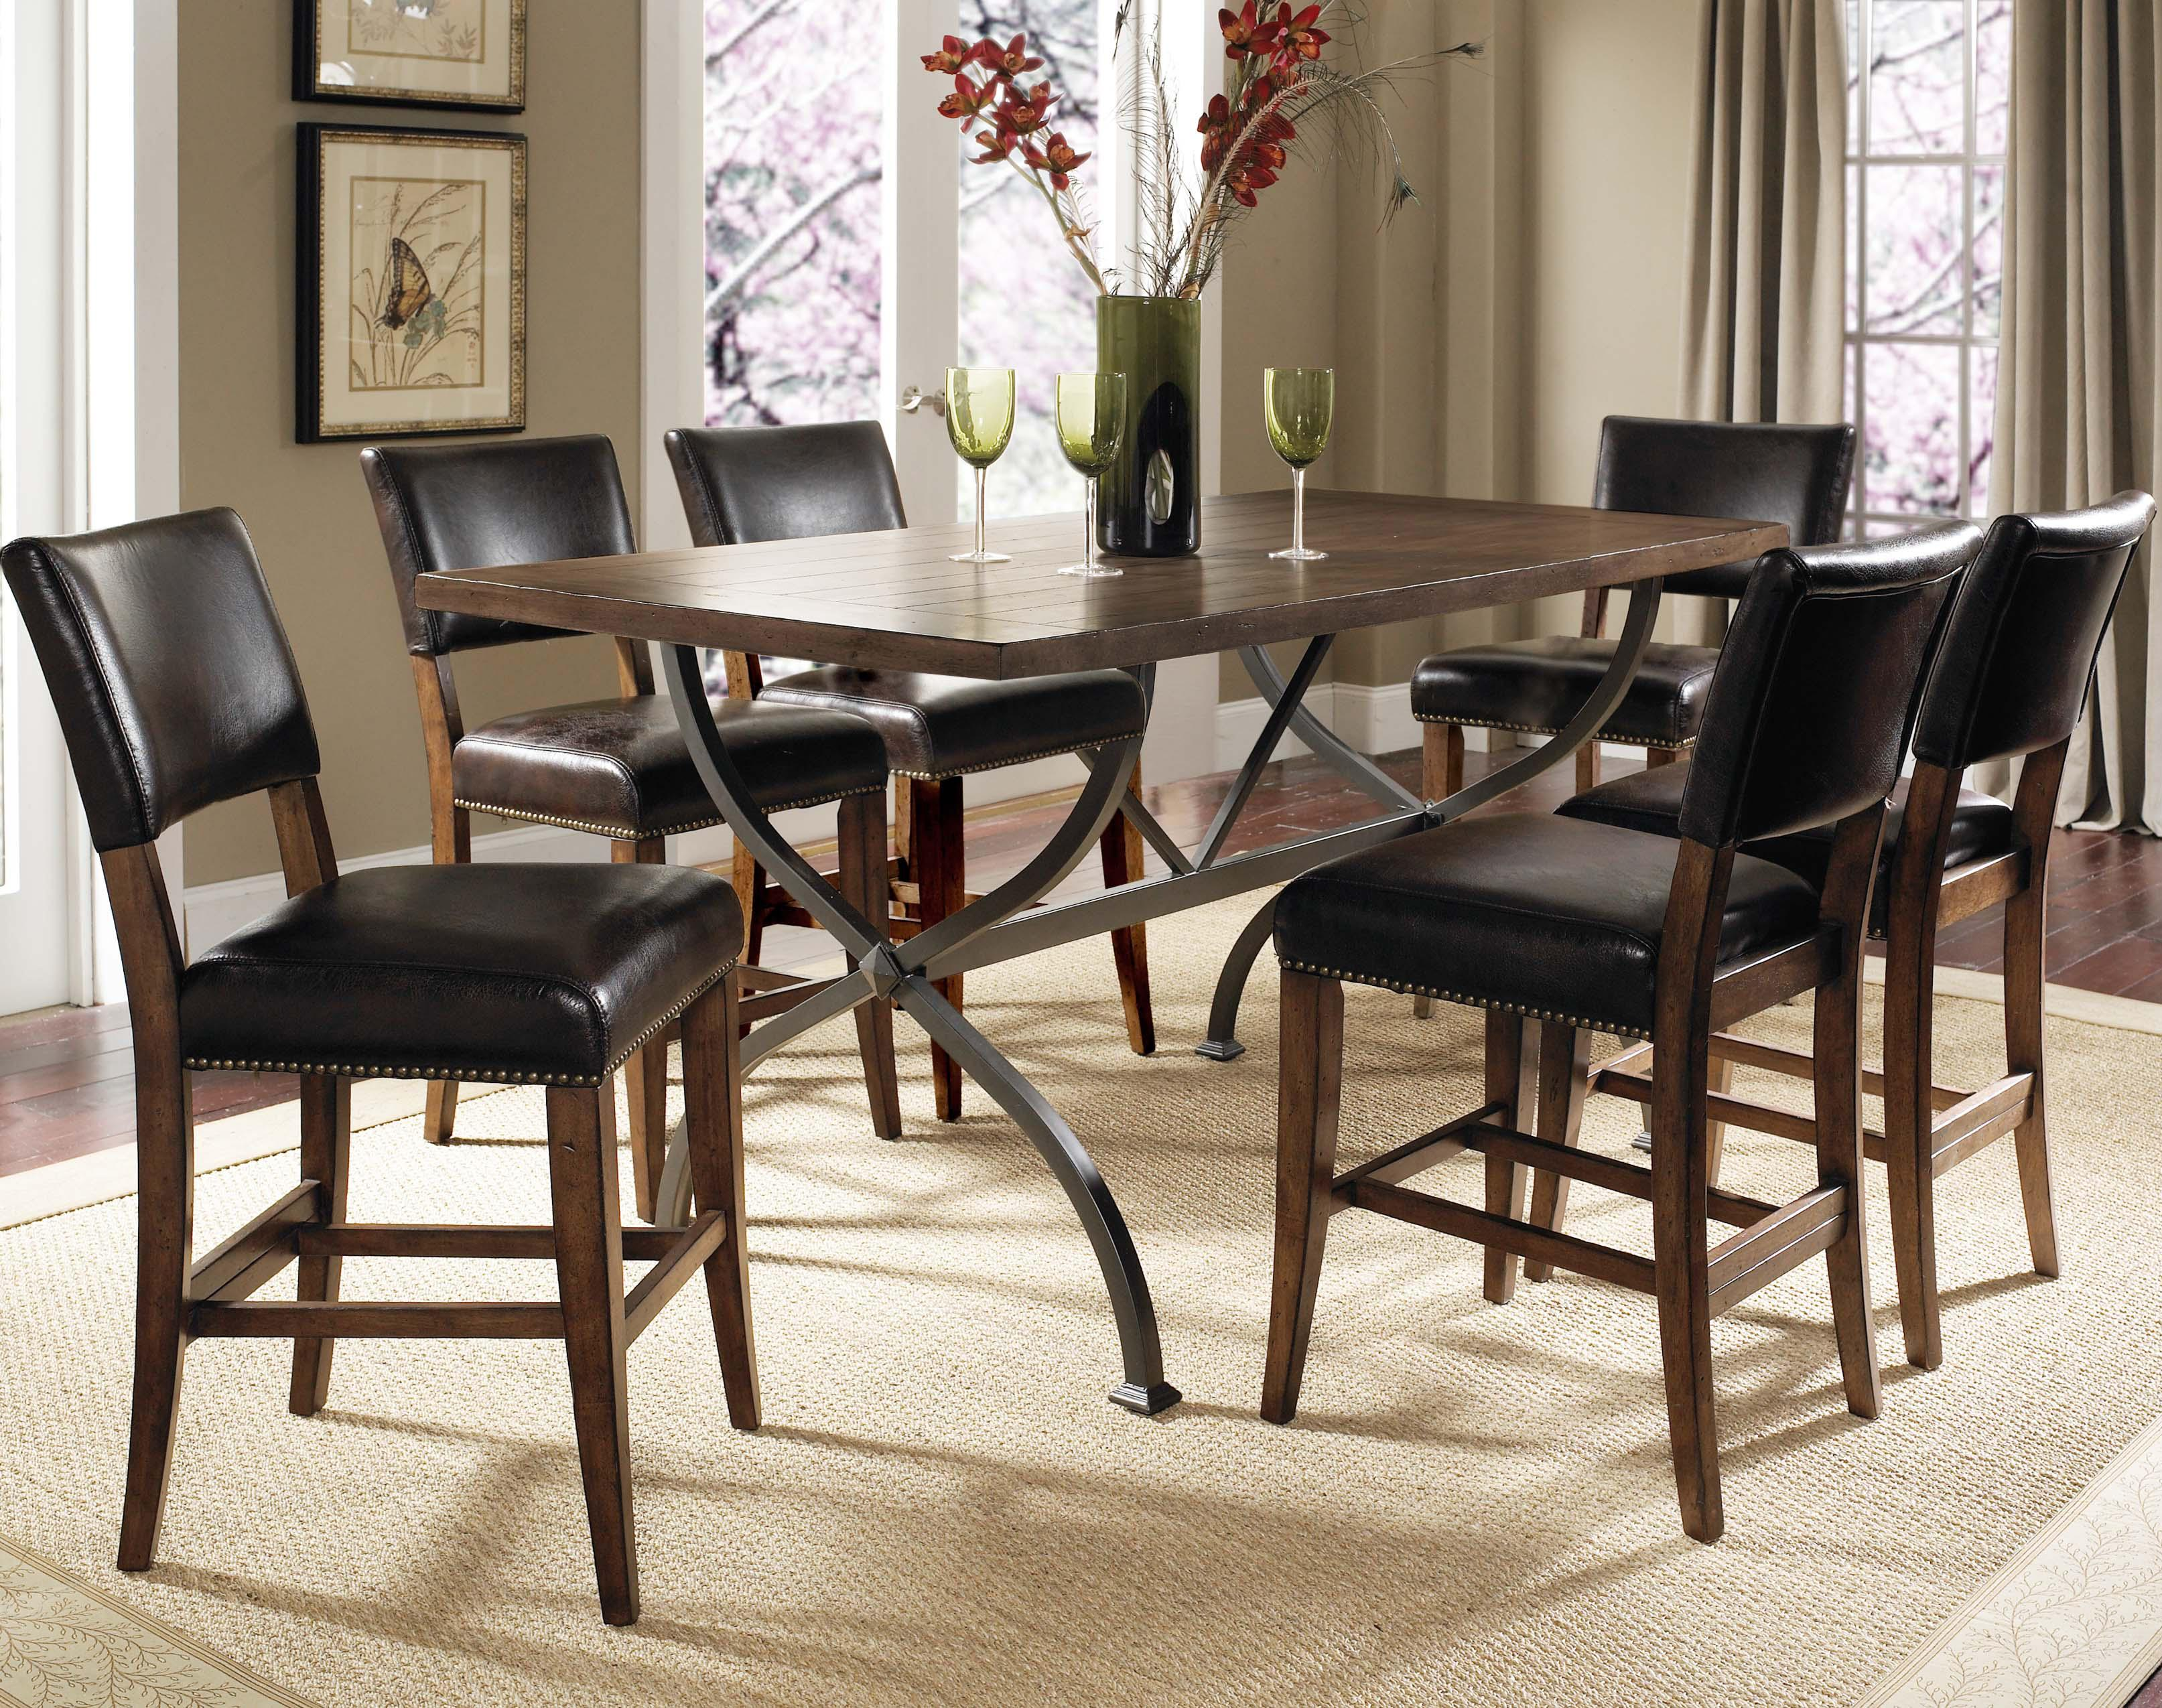 Hillsdale Cameron Round Wood Dining Table With Metal Acent Base   Wayside  Furniture   Kitchen Table